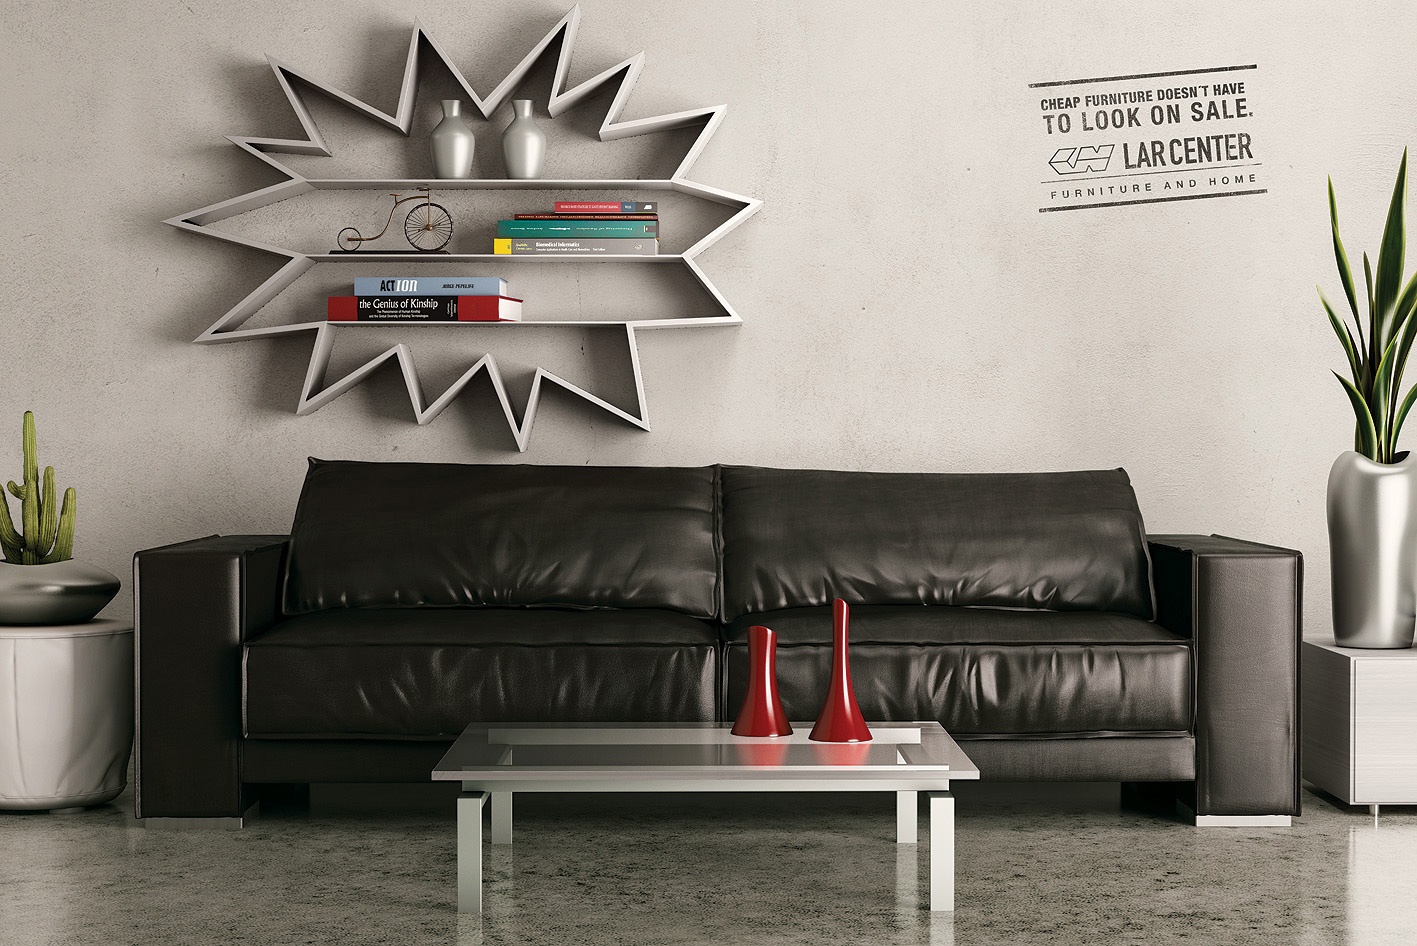 Lar Center Print Advert By Ageisobar Wall Ads of the World